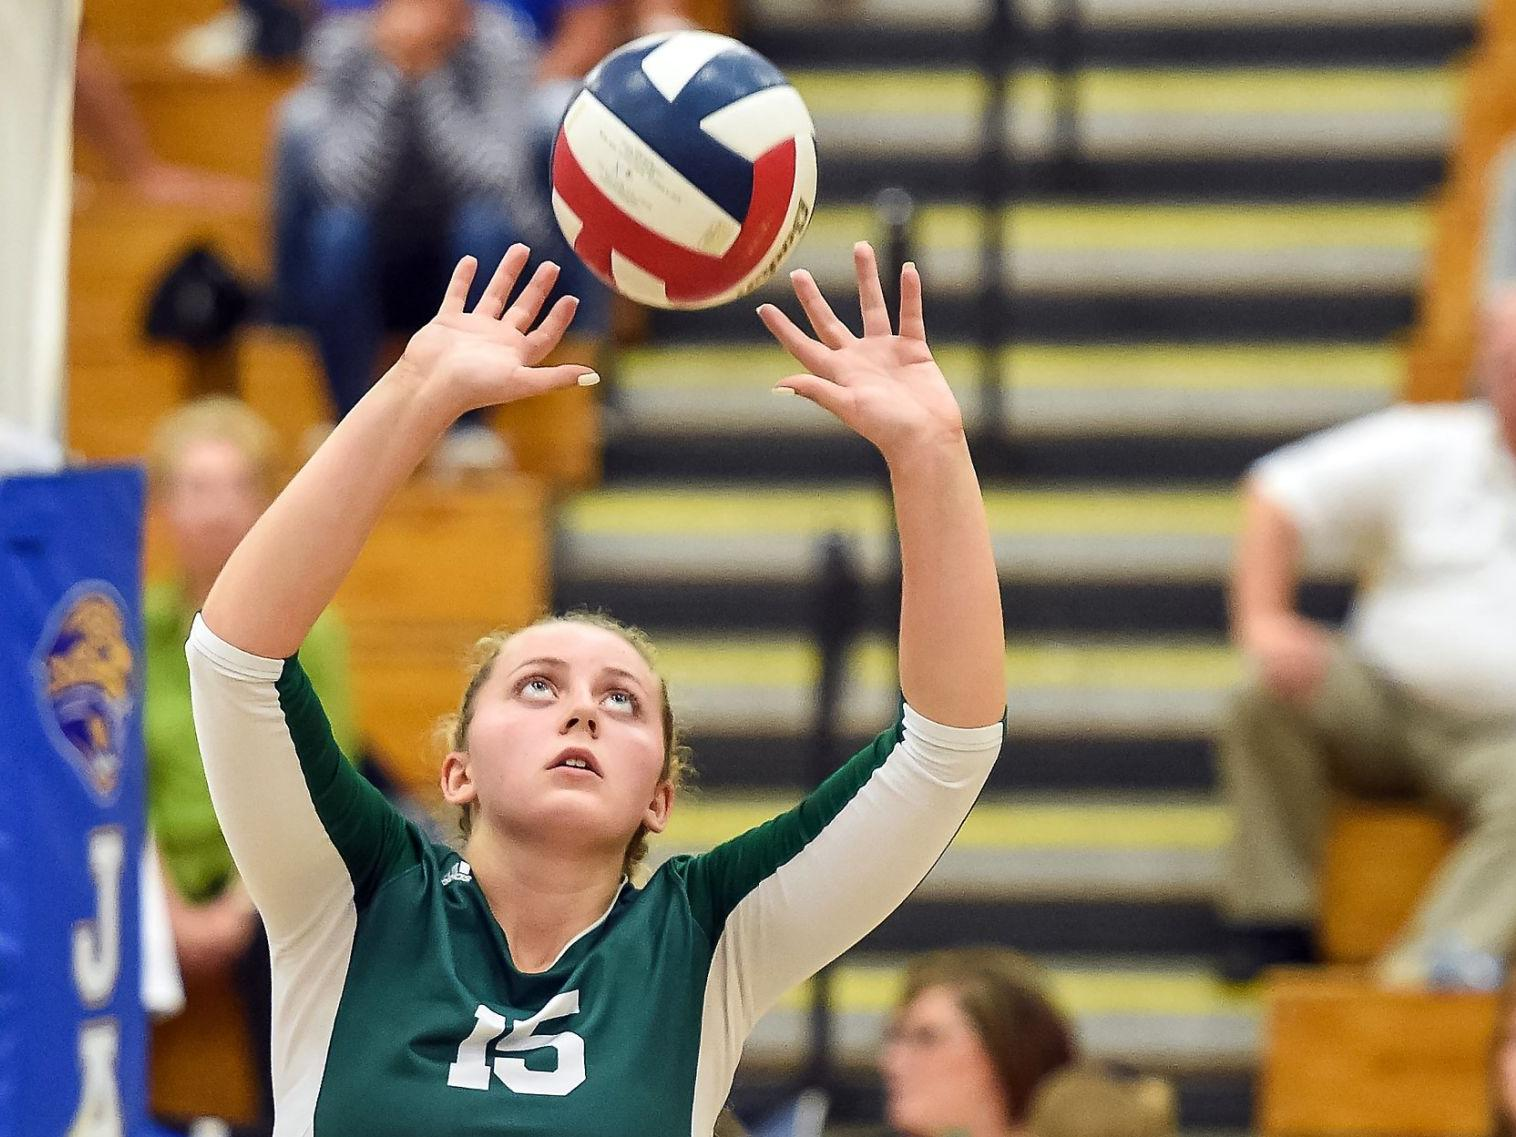 Kiene Leads Aggressive Serving Attack To Help Mehlville Sweep Seckman Girls Volleyball Stltoday Com